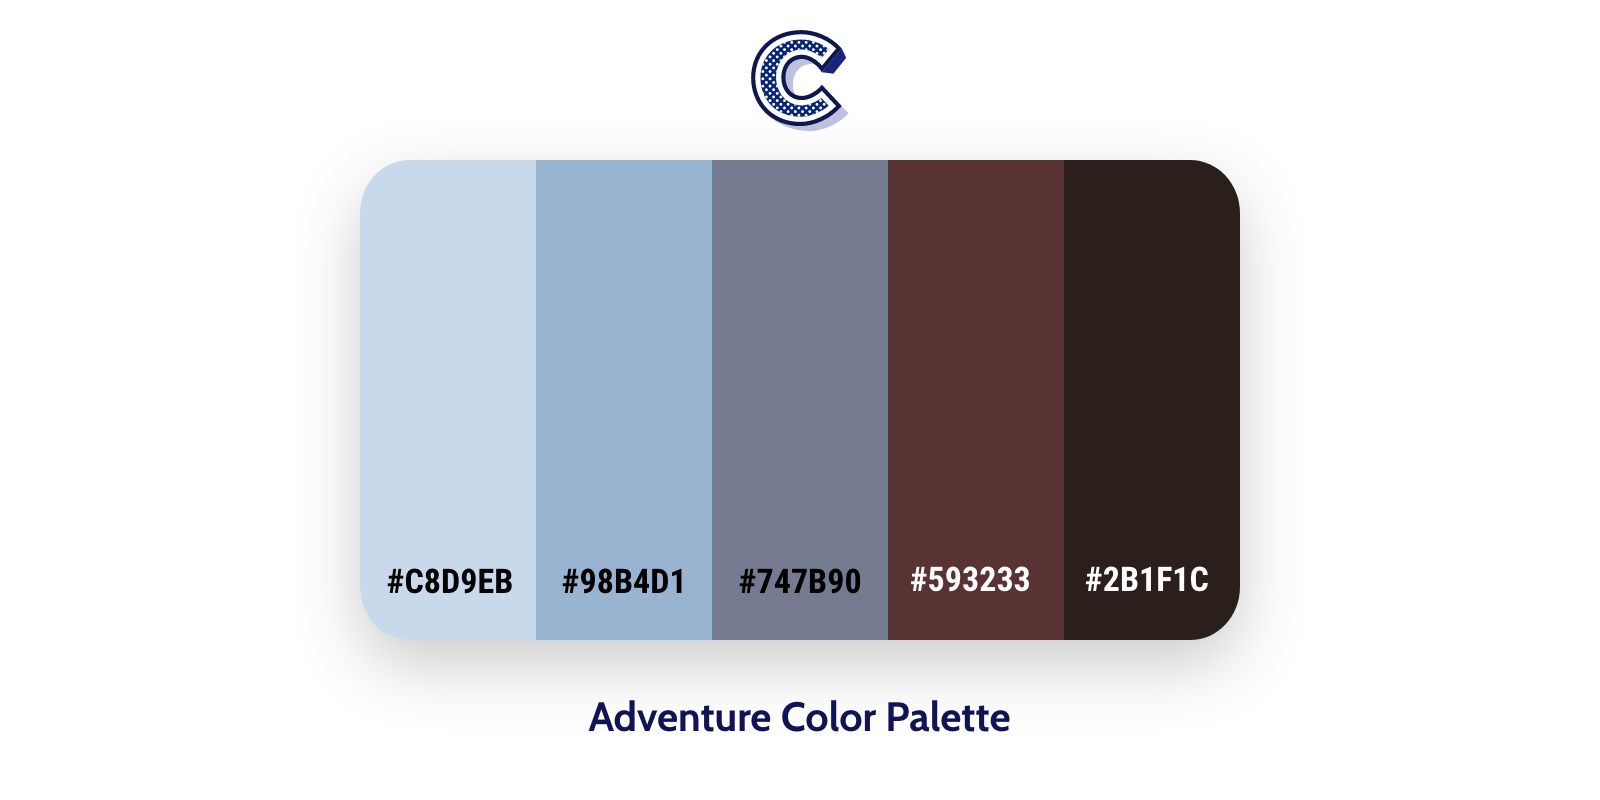 the featured image of adventure color palette